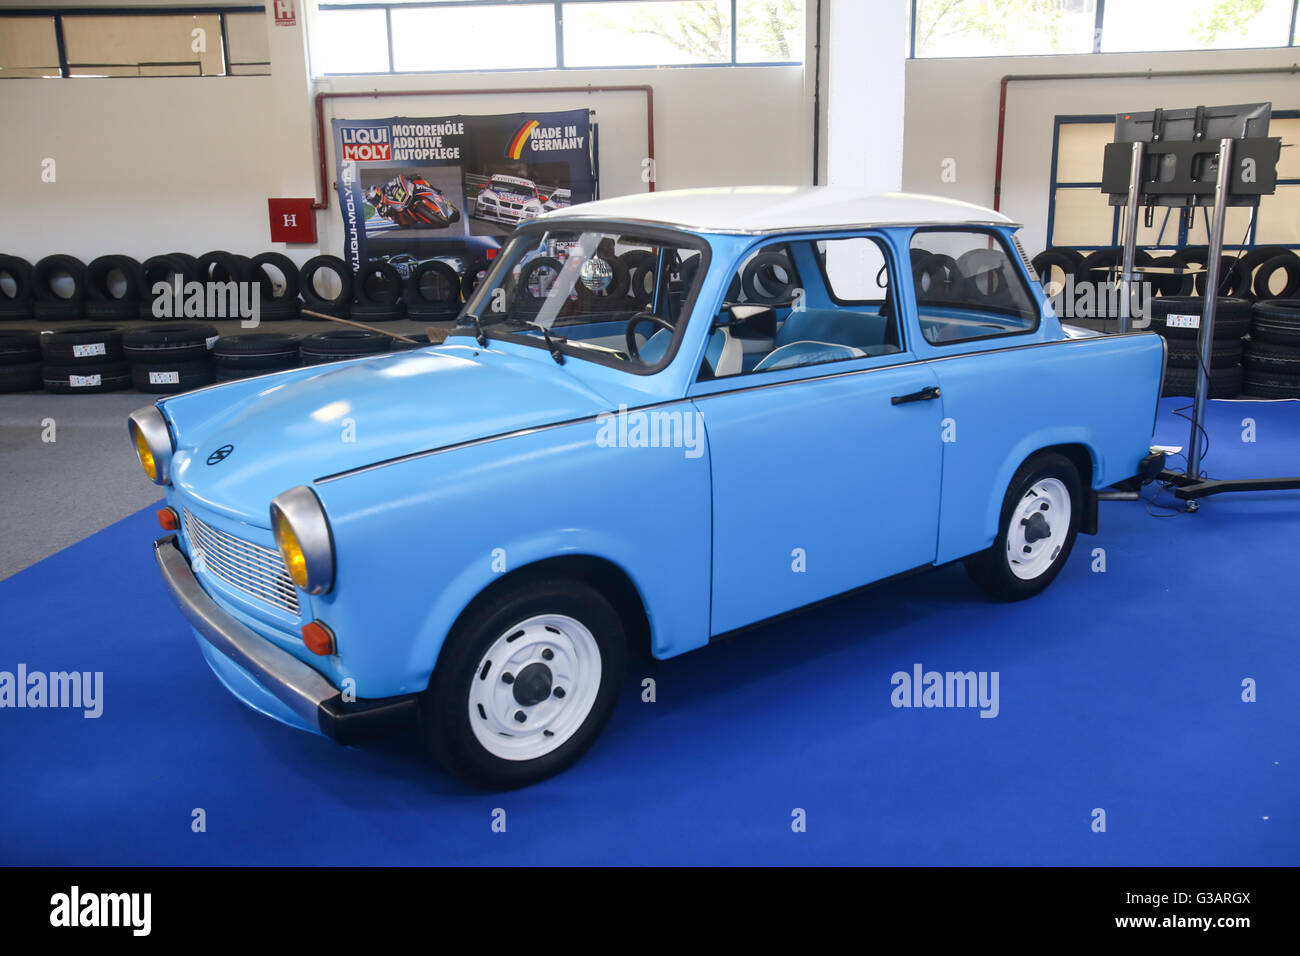 ZAGREB, CROATIA - JUNE 4, 2016 : An oldtimer car Trabant exhibited at Fast and furious street race in Zagreb, Croatia. Stock Photo